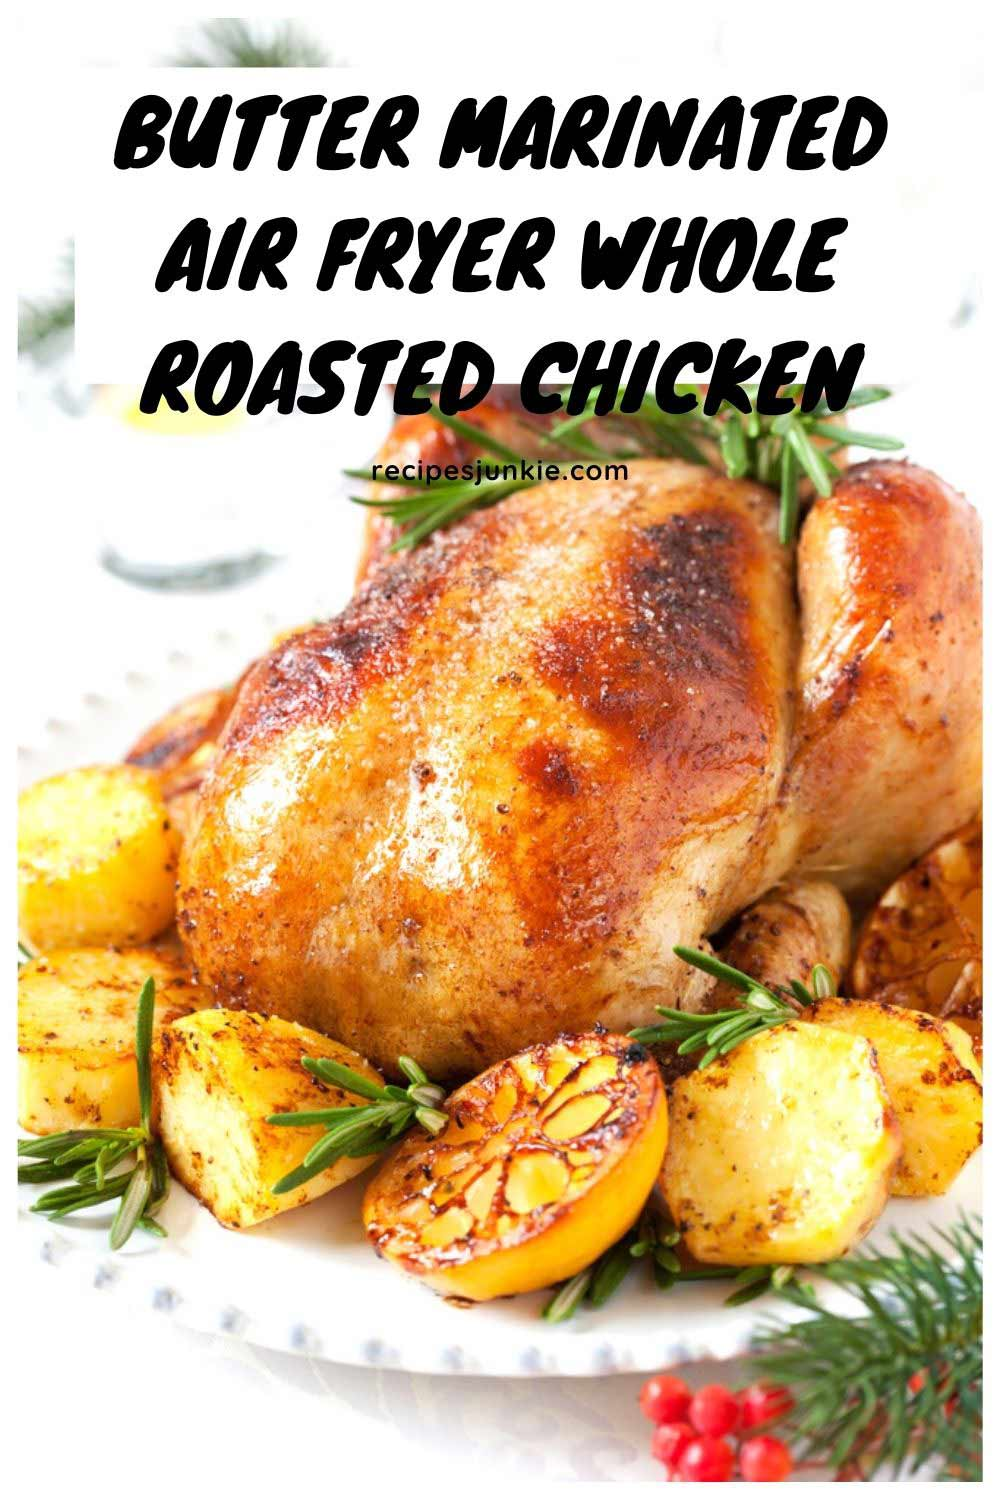 Healthy Air Fryer Recipes To Try At Home